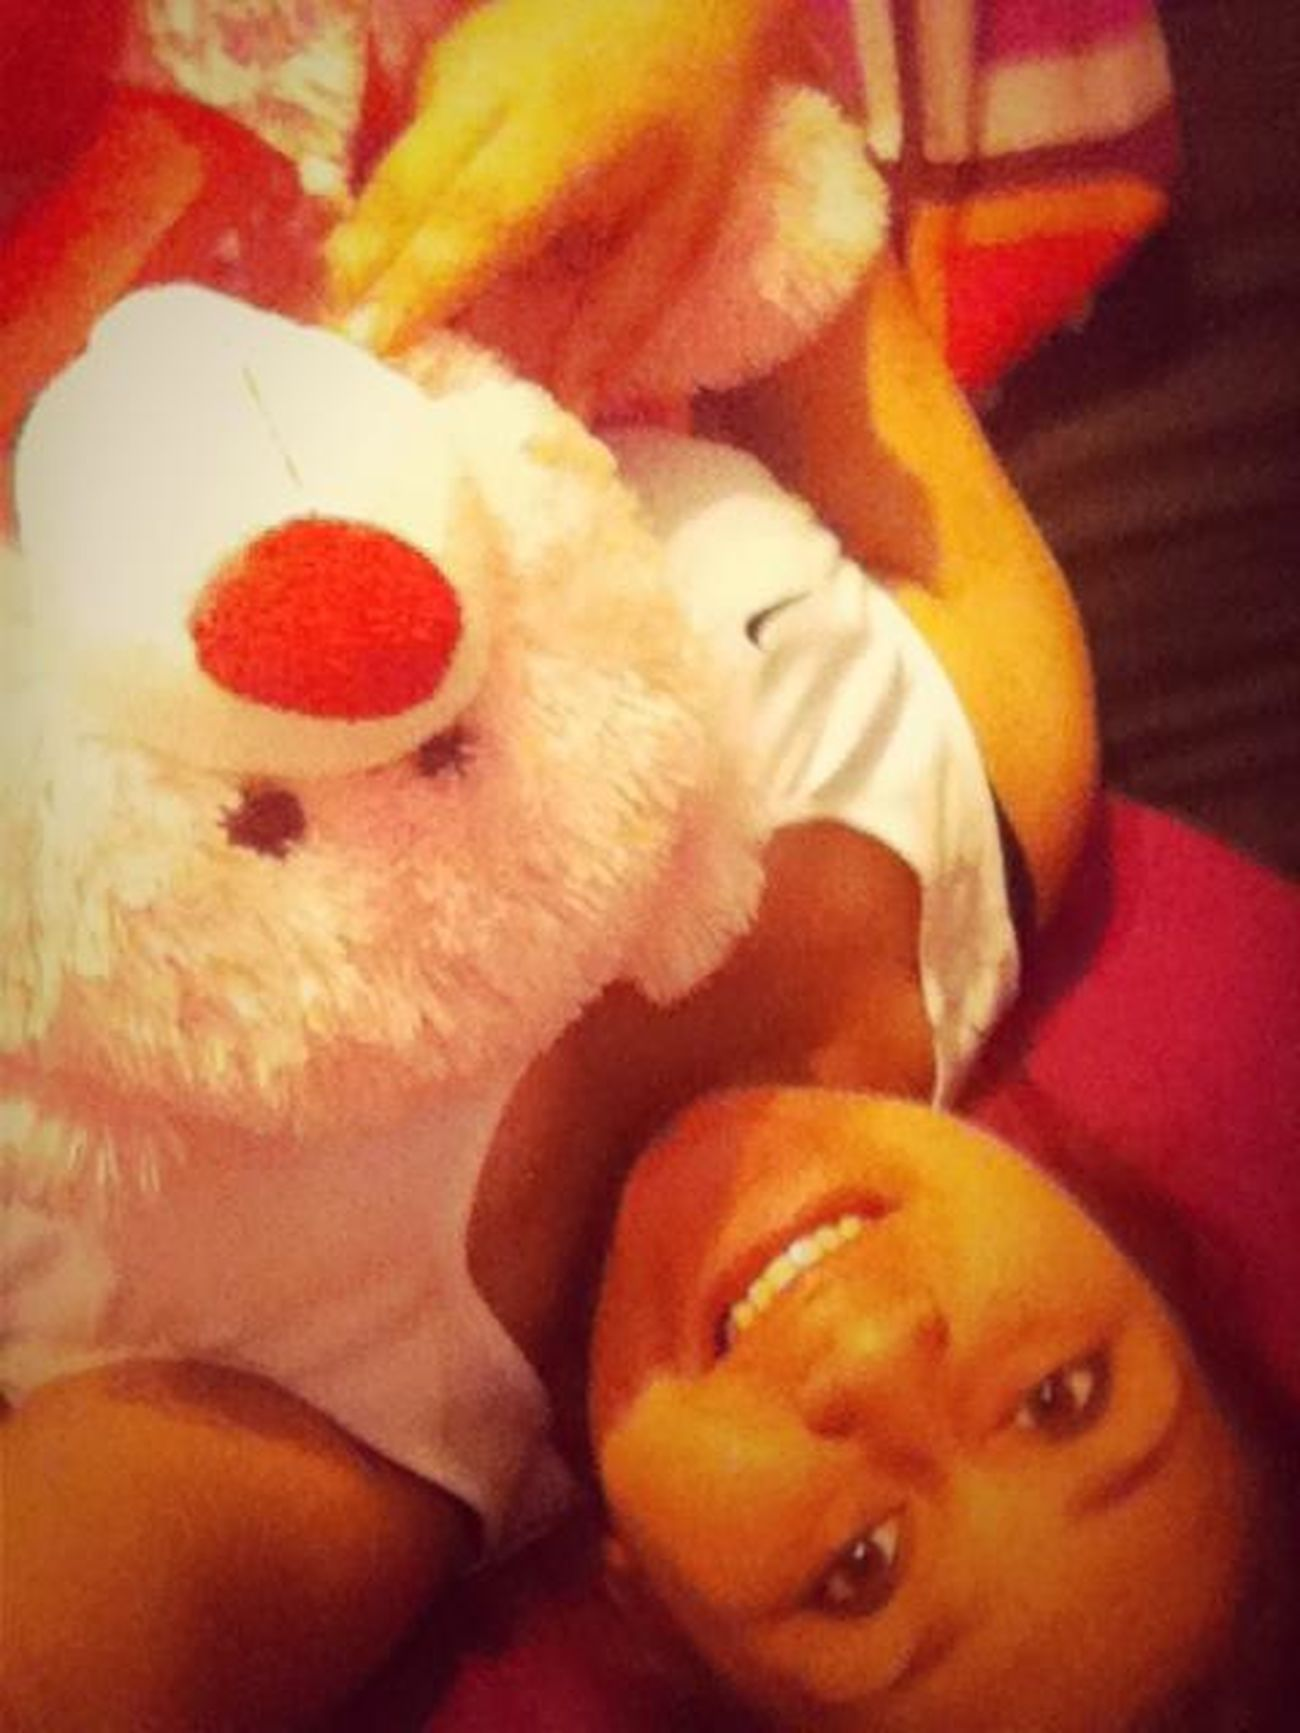 With The Bear Bestfriend Gave Me ☺